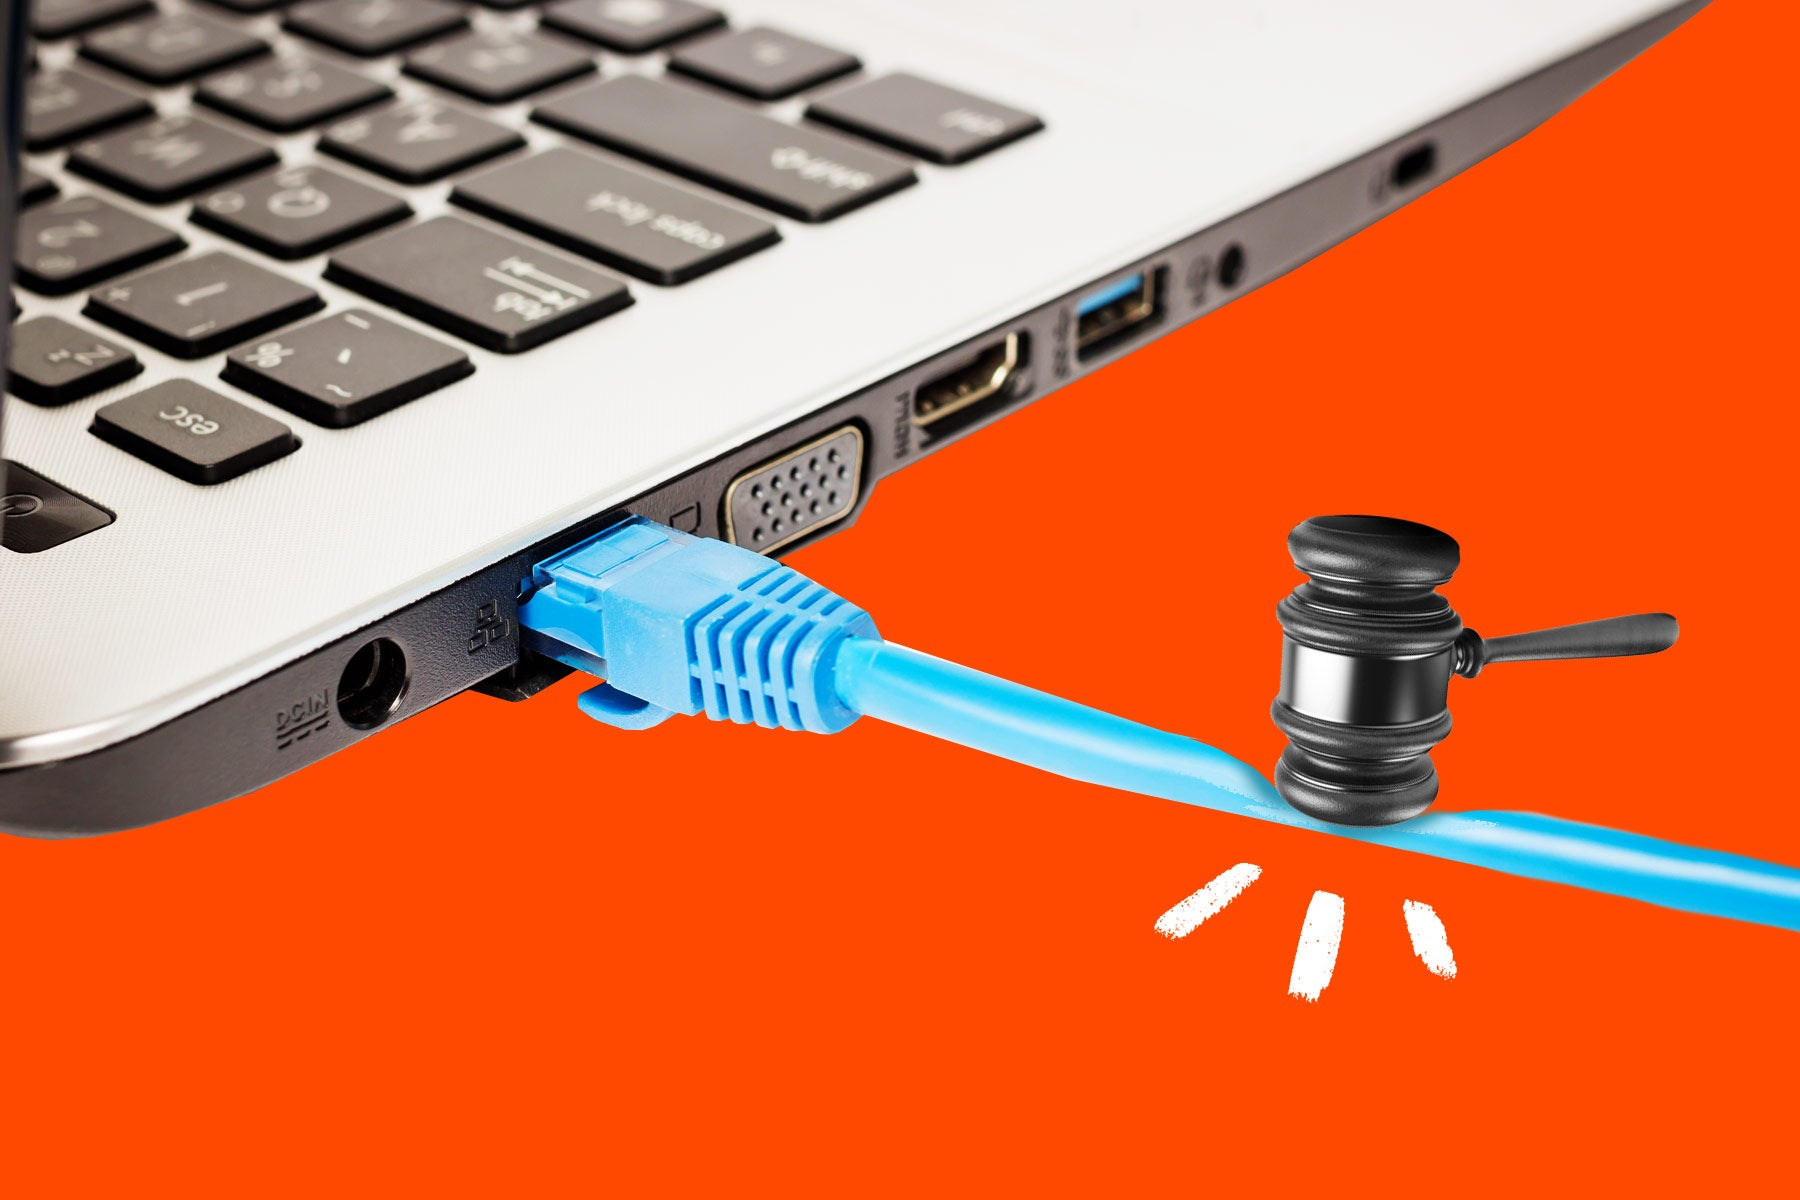 Photo illustration of a gavel coming down on an ethernet cable attached to a Mac laptop.